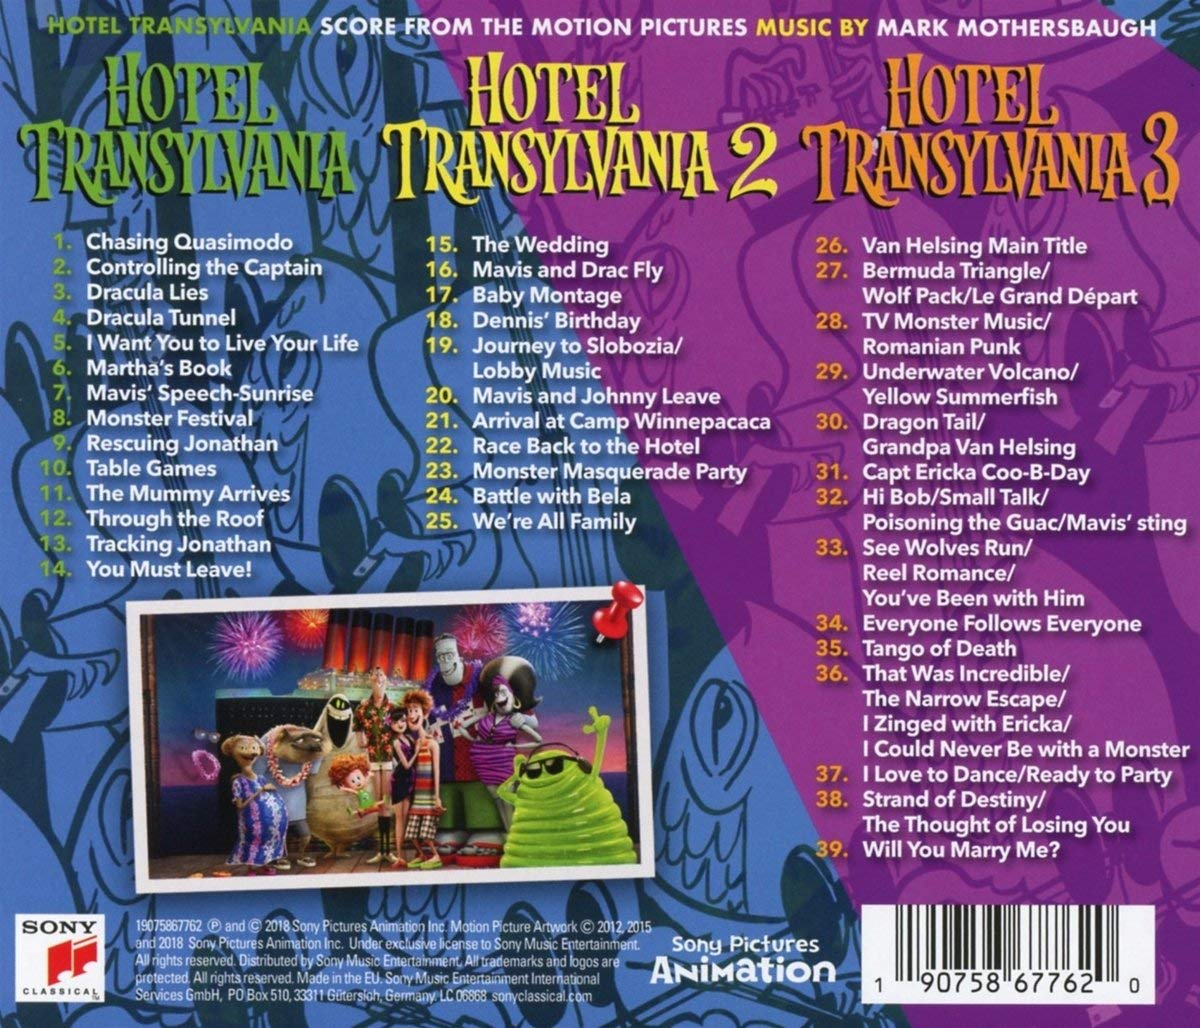 Hotel transylvania 3 original motion soundtrack music musica It's Party Time Sony Classic Mark Mothersbaugh